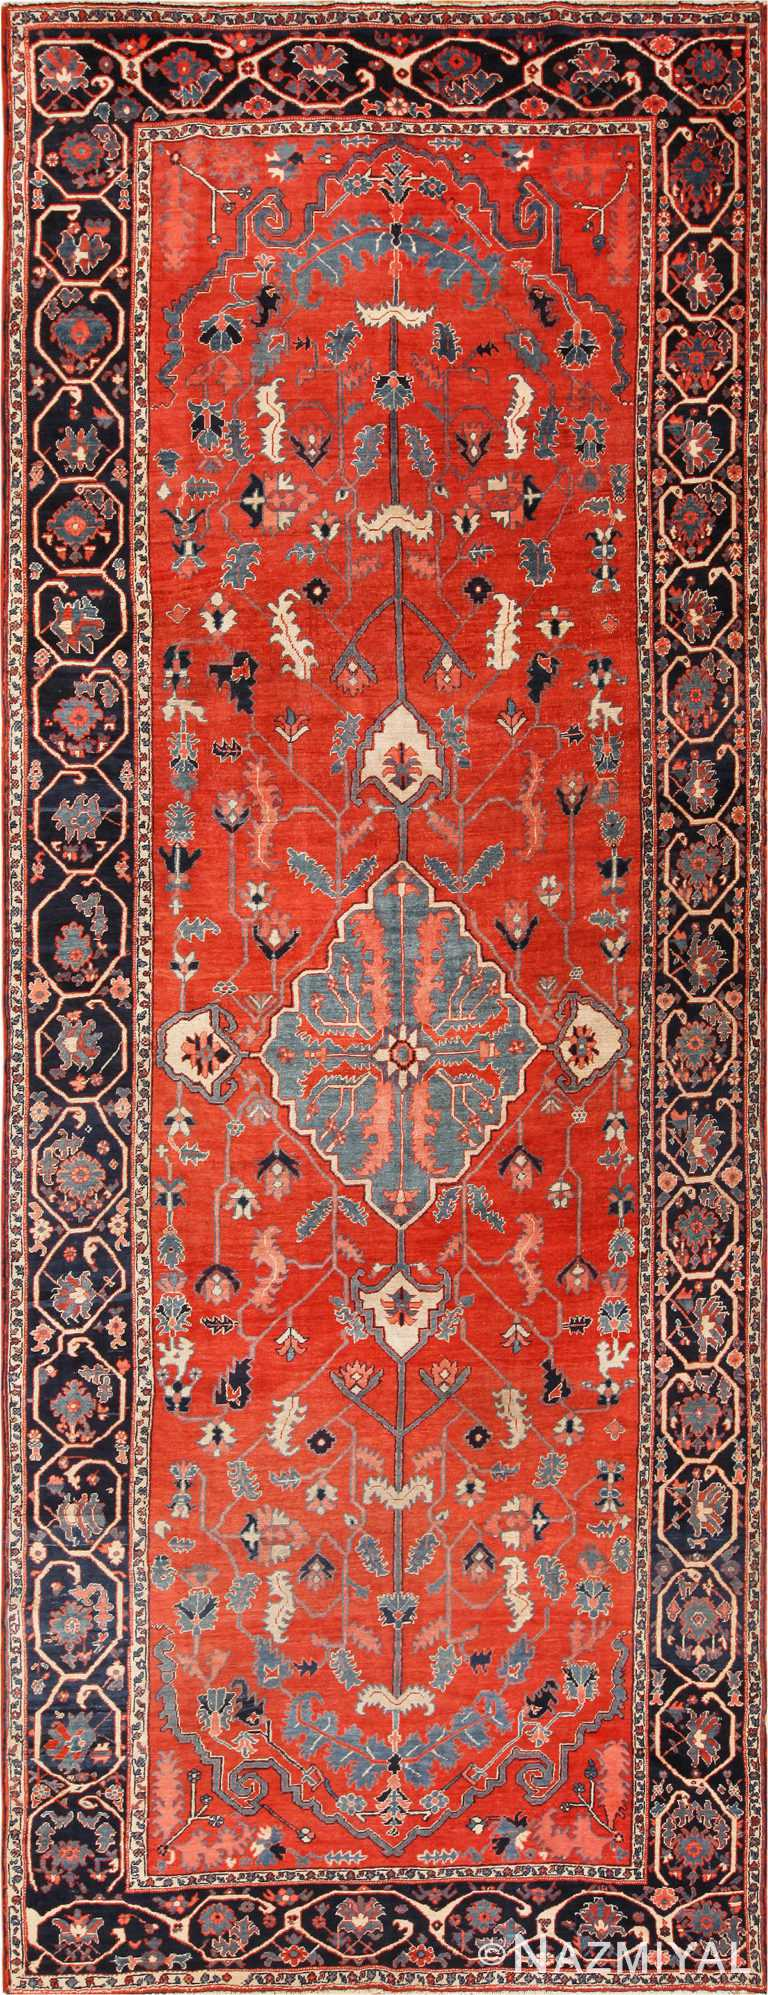 Rare Long And Narrow Antique Persian Heriz Rug 70261 by Nazmiyal Antique Rugs in NYC